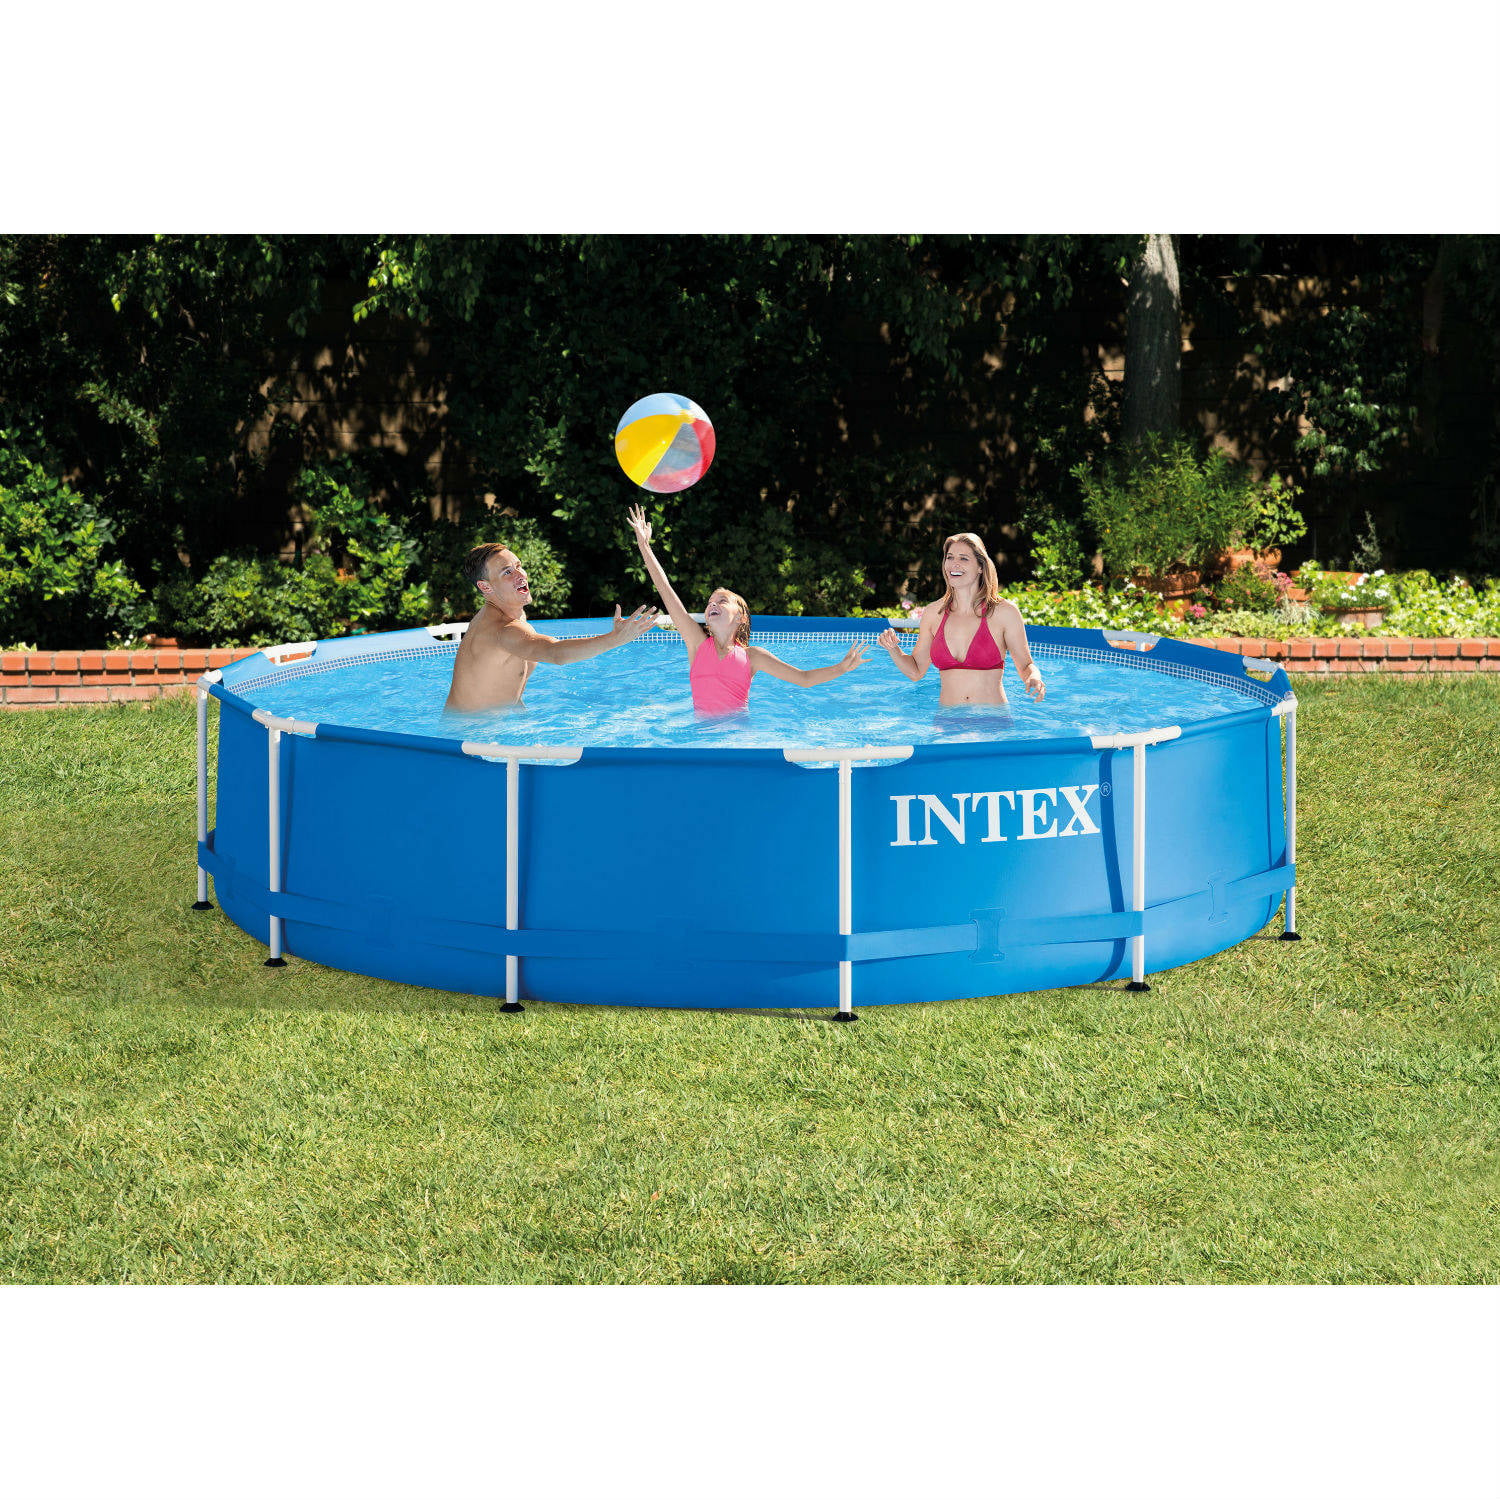 Intex 12' x 30'' Metal Frame Above Ground Swimming Pool with Filter Pump by Intex